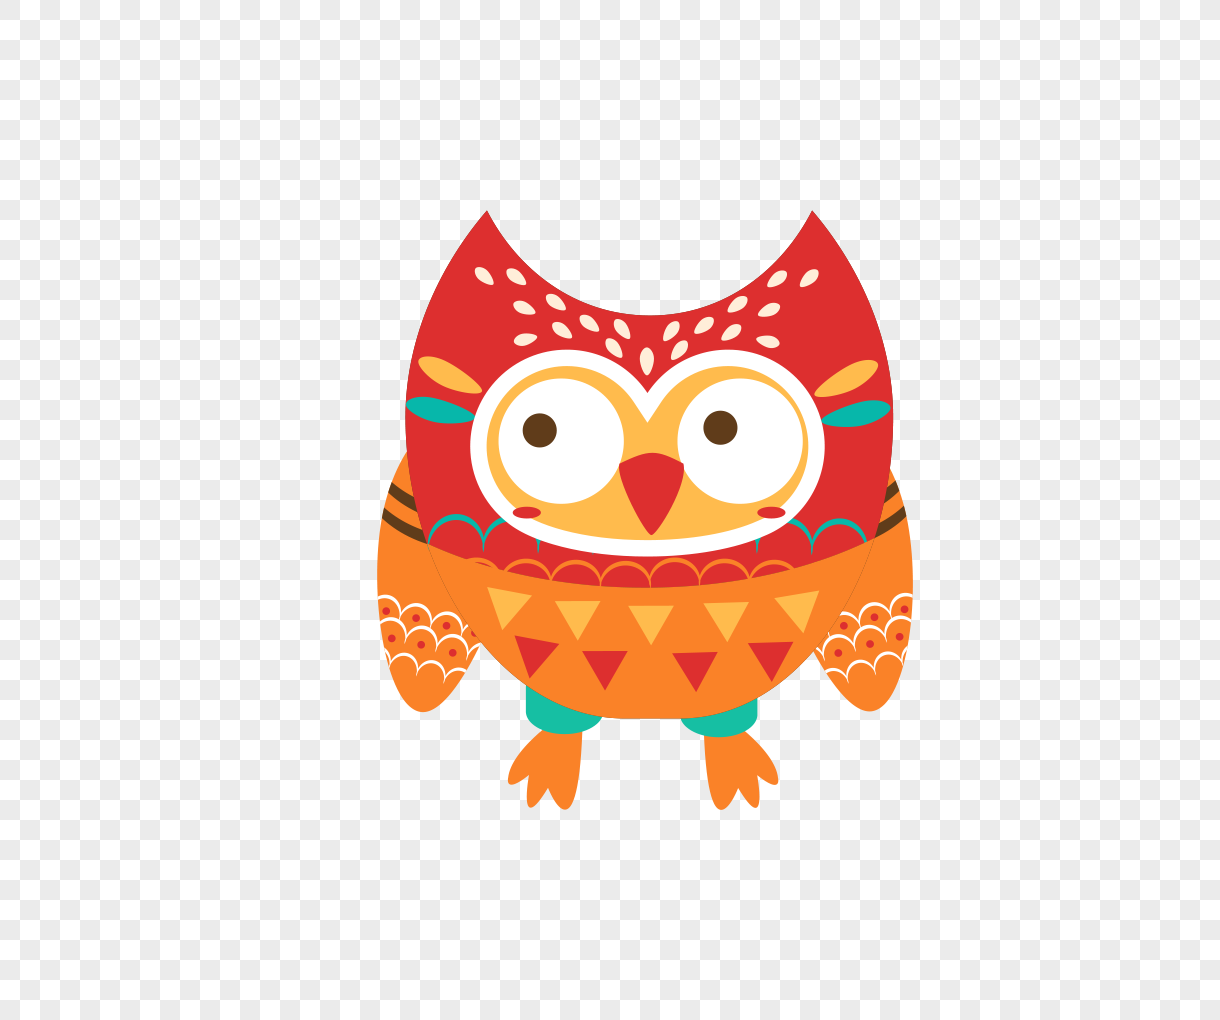 1220x1020 Cartoon Owl Vector Material Png Image Picture Free Download